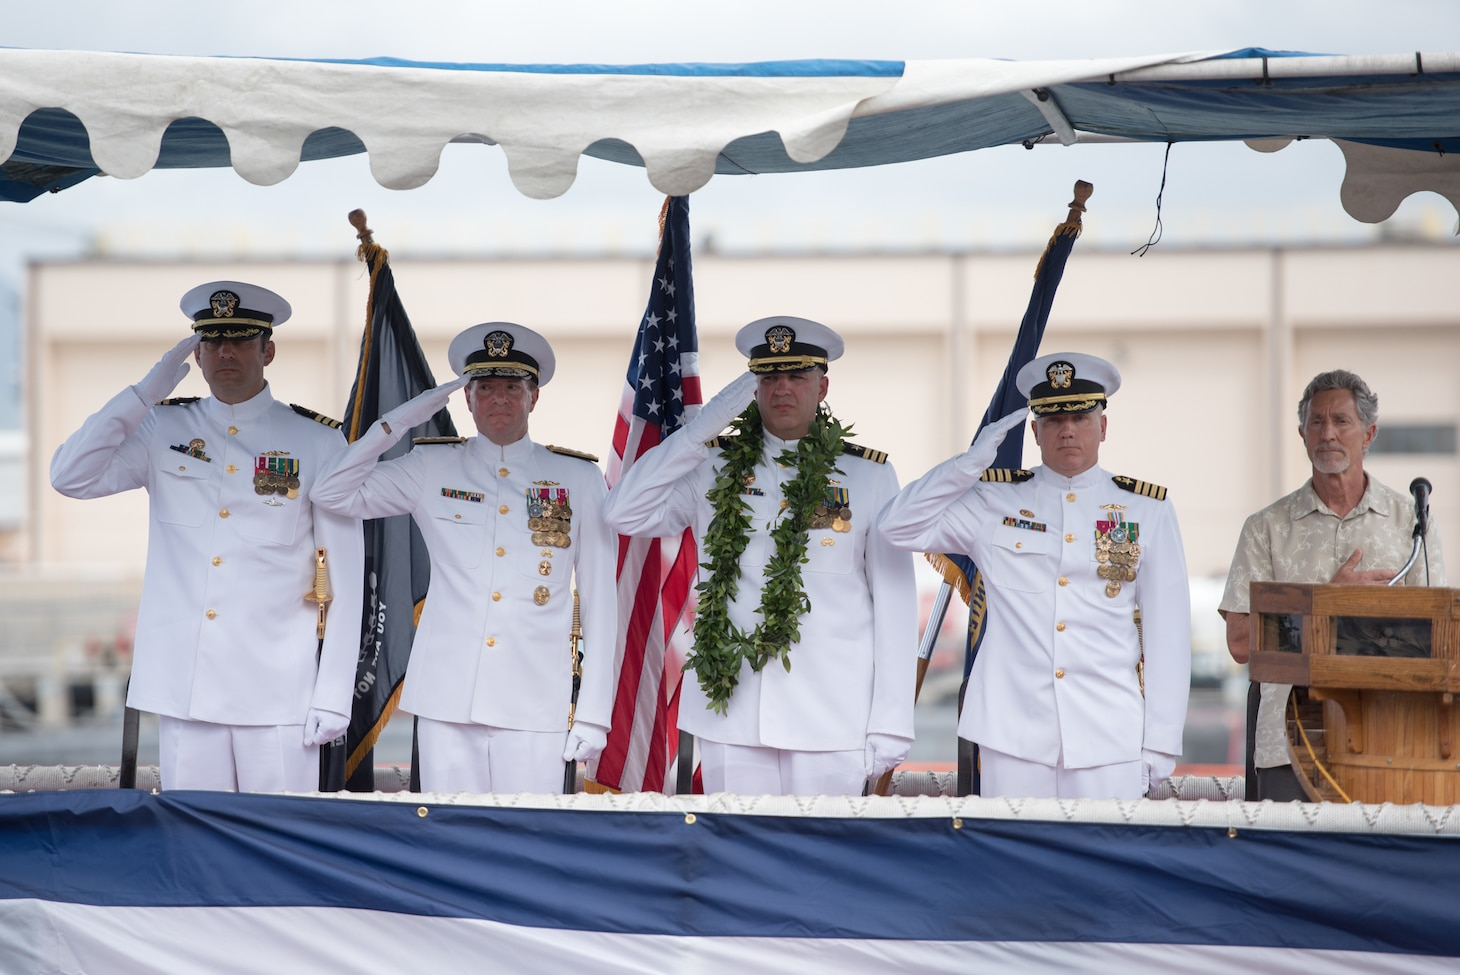 PEARL HARBOR (August 2, 2018) - The official party salutes during a change of command ceremony of the Virginia-class fast-attack submarine USS Hawaii (SSN 776) on the submarine piers in Joint Base Pearl Harbor-Hickam, August 2. Cmdr. Sterling S. Jordan relieved Cmdr. John C. Roussakies as Hawaii's commanding officer.